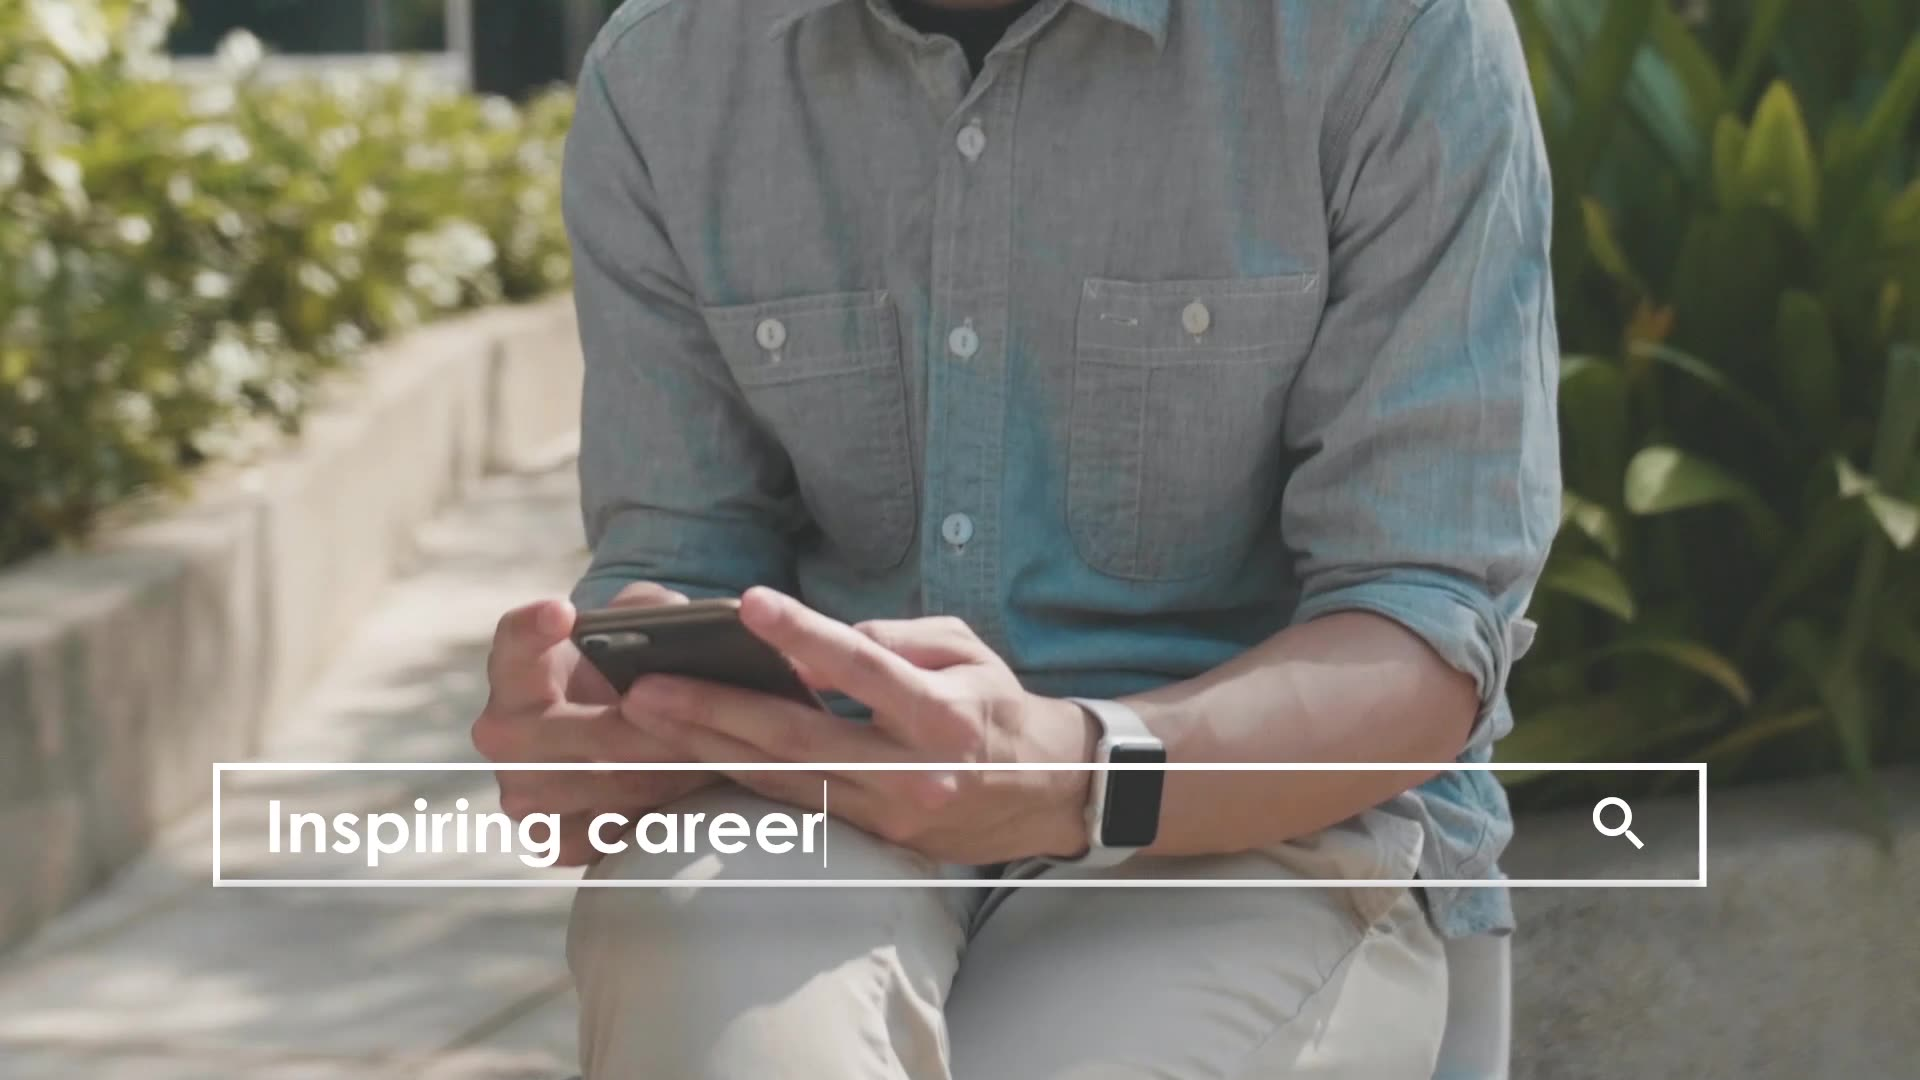 DSO Recruitment Video